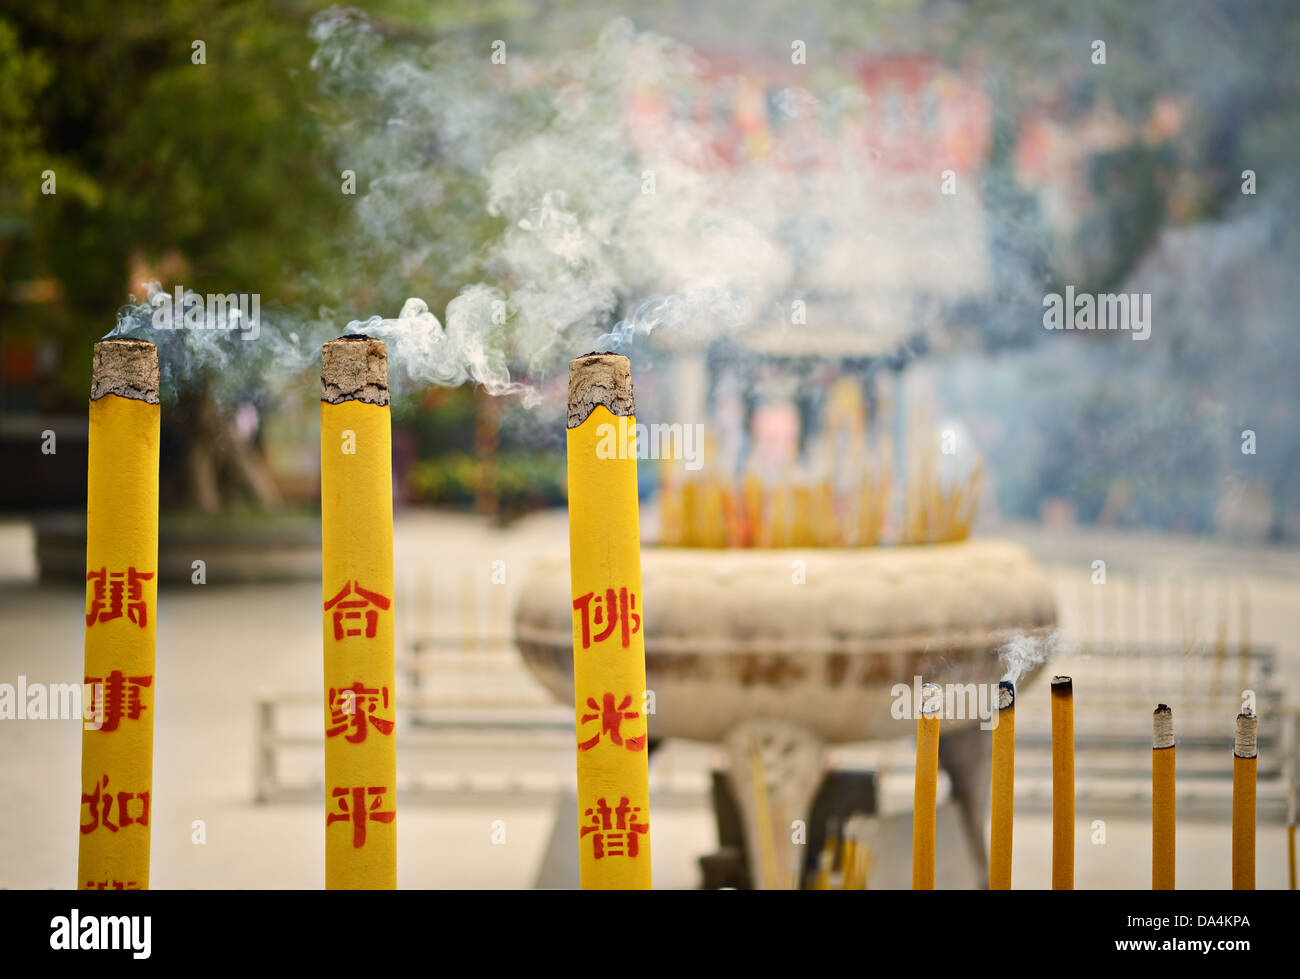 Incense burn at a temple on Lantau Island, Hong Kong SAR, China. - Stock Image